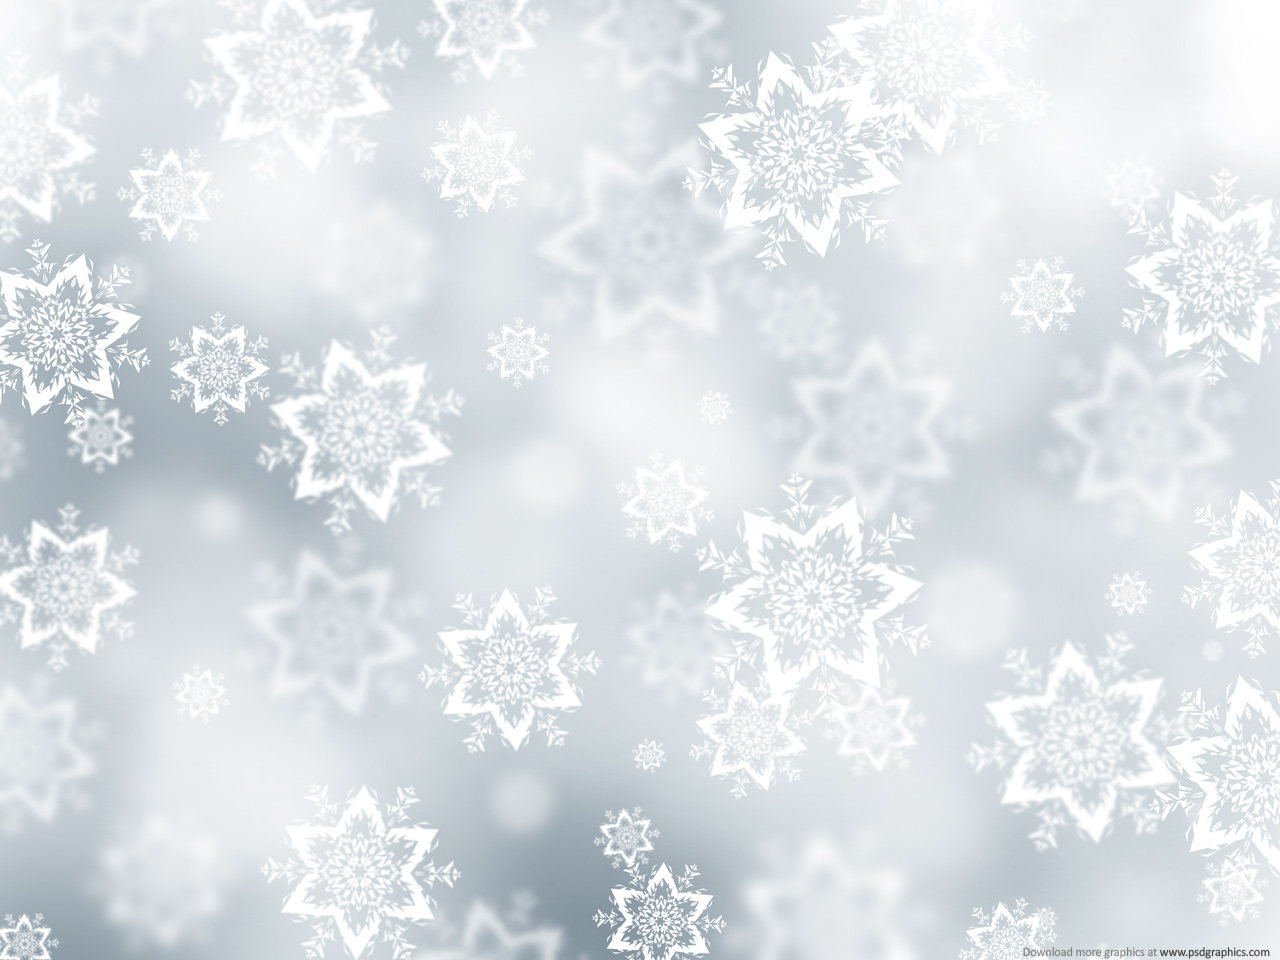 14 Snowing Backgrounds PSD Images